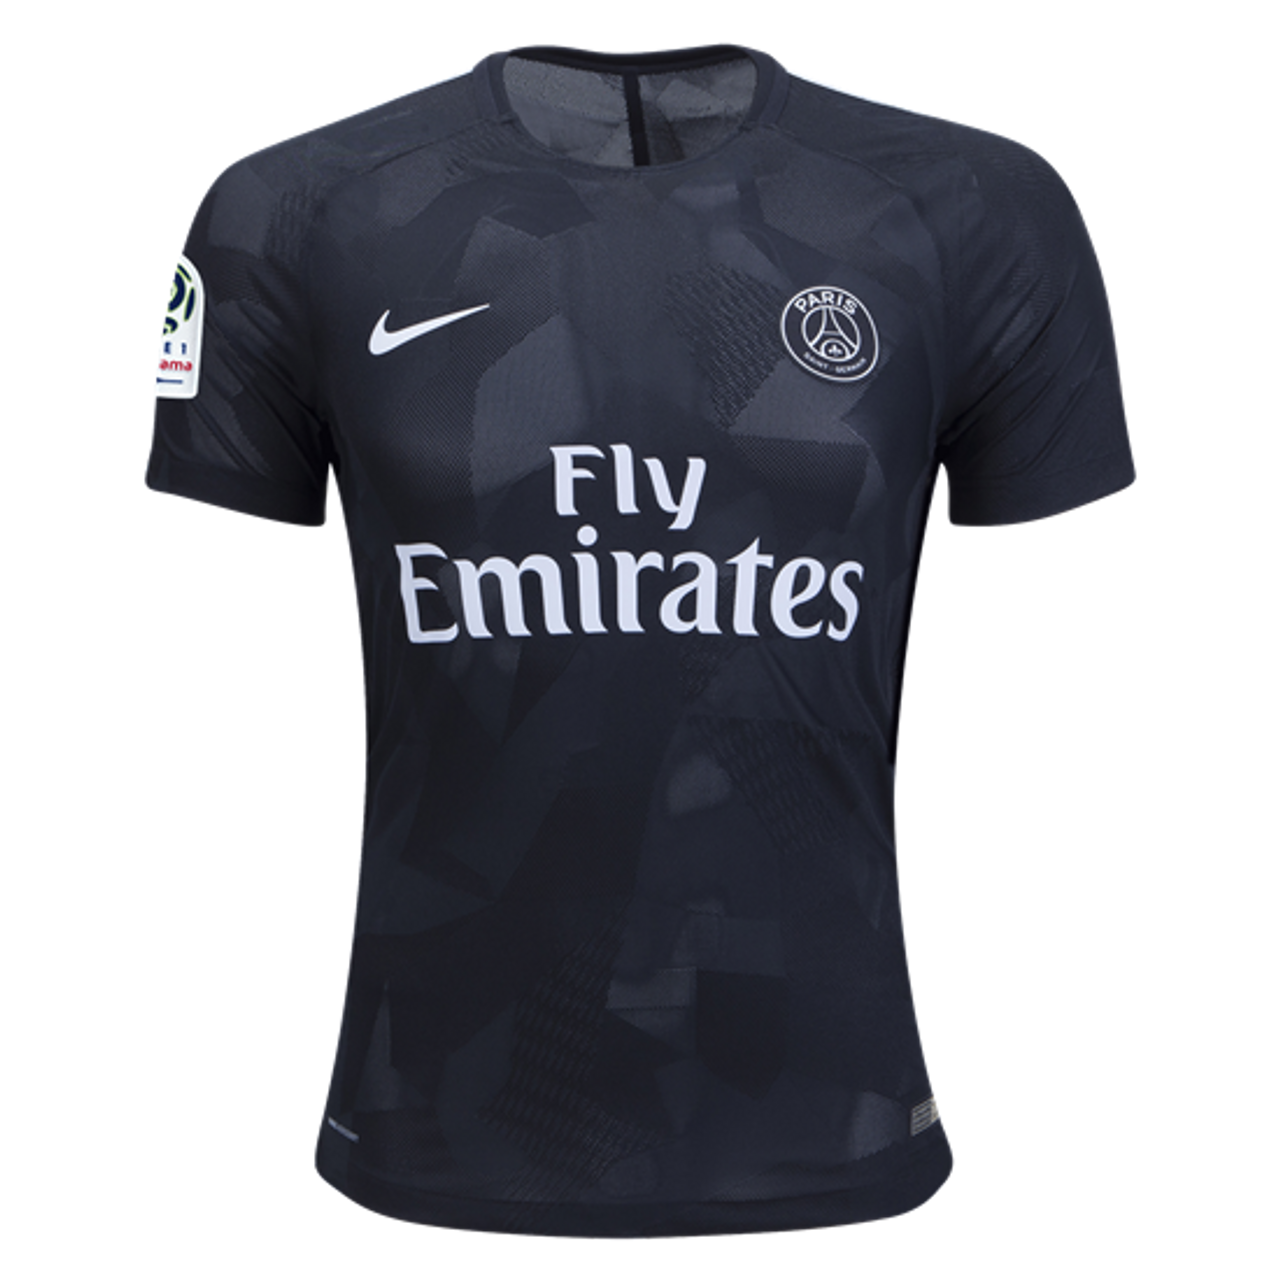 best service 577e6 16756 NIKE PARIS SAINT GERMAIN 2018 AUTHENTIC 3RD JERSEY